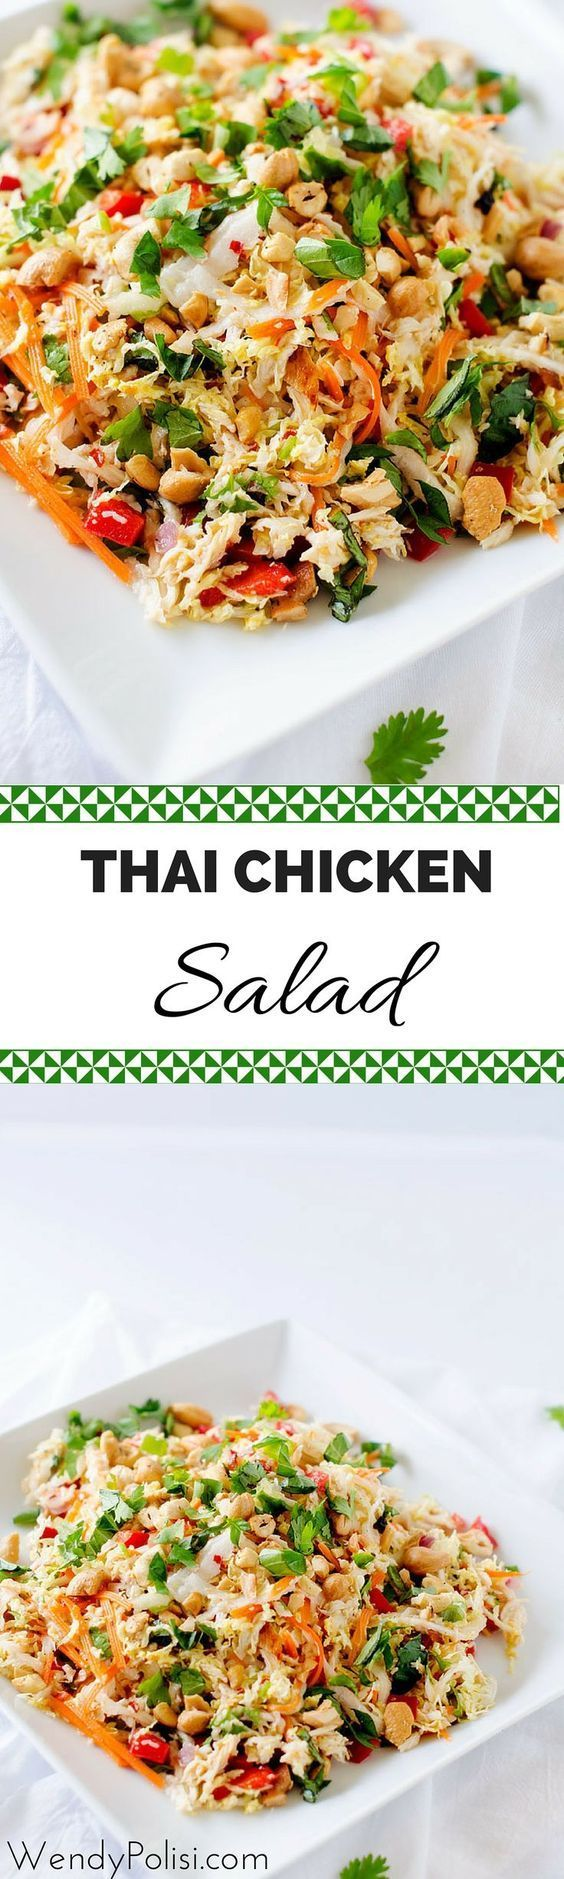 Thai Chicken Salad with Ginger Lime Dressing - This healthy salad recipe is packed with flavor and texture! Naturally gluten free and peanut free, this is a healthy meal you won't want to miss.- http://WendyPolisi.com